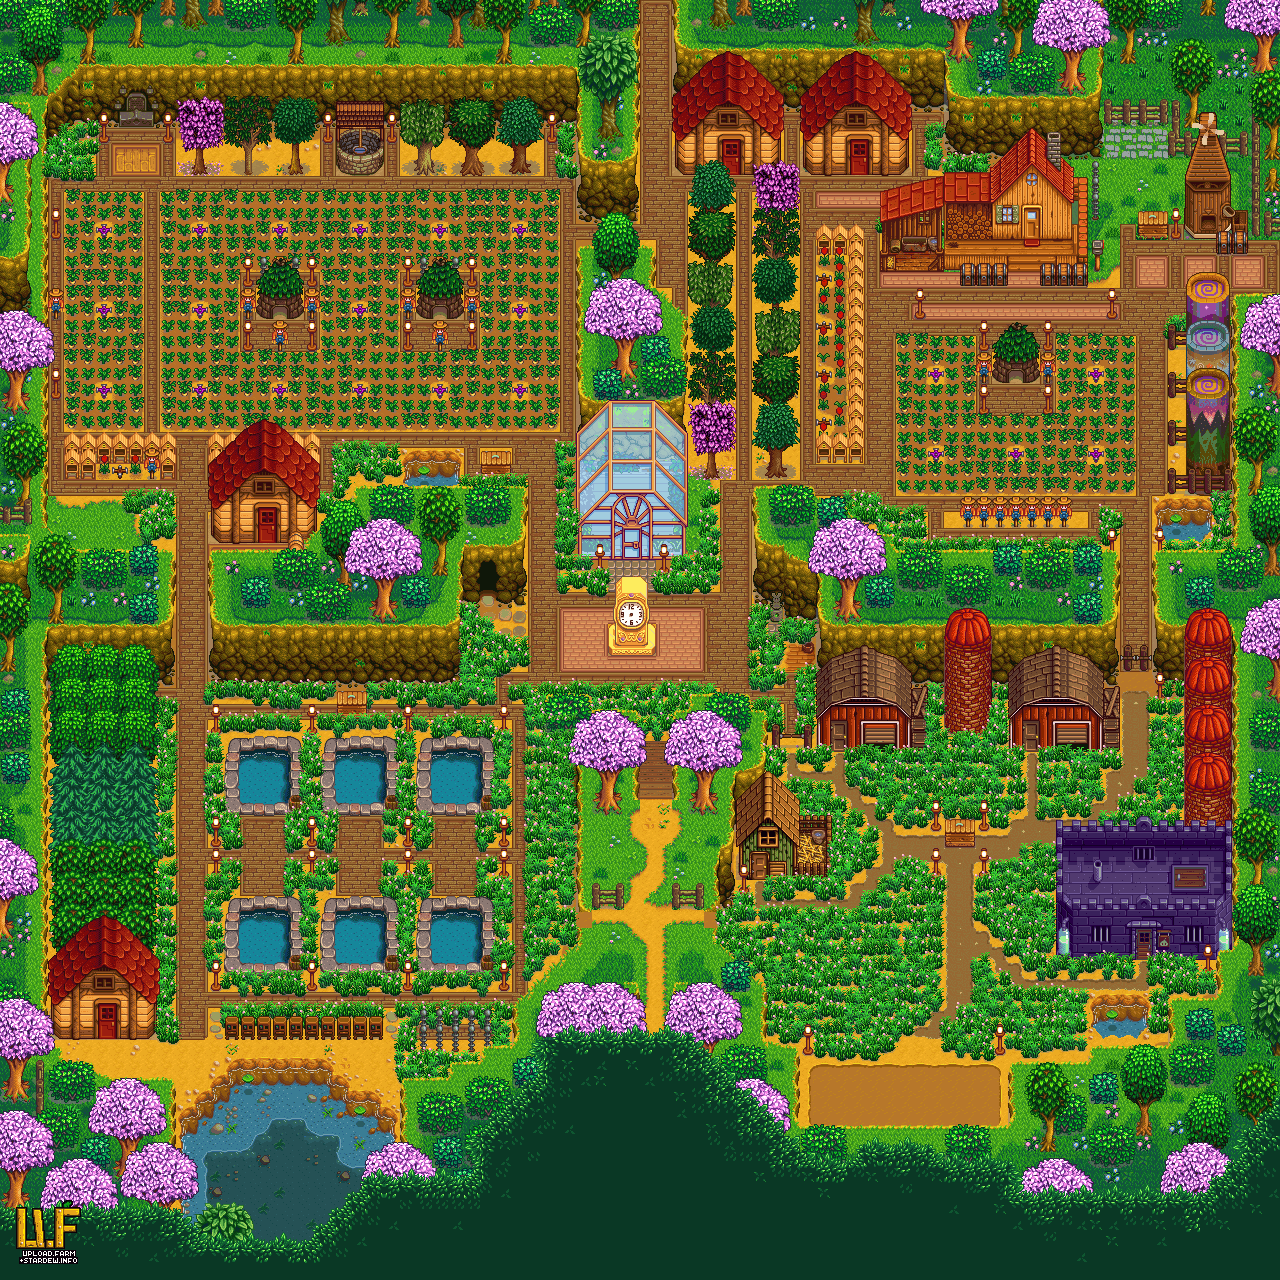 Pin By Sarah Bess On Hobby Stardew Valley Stardew Valley Layout Stardew Valley Stardew Valley Farms